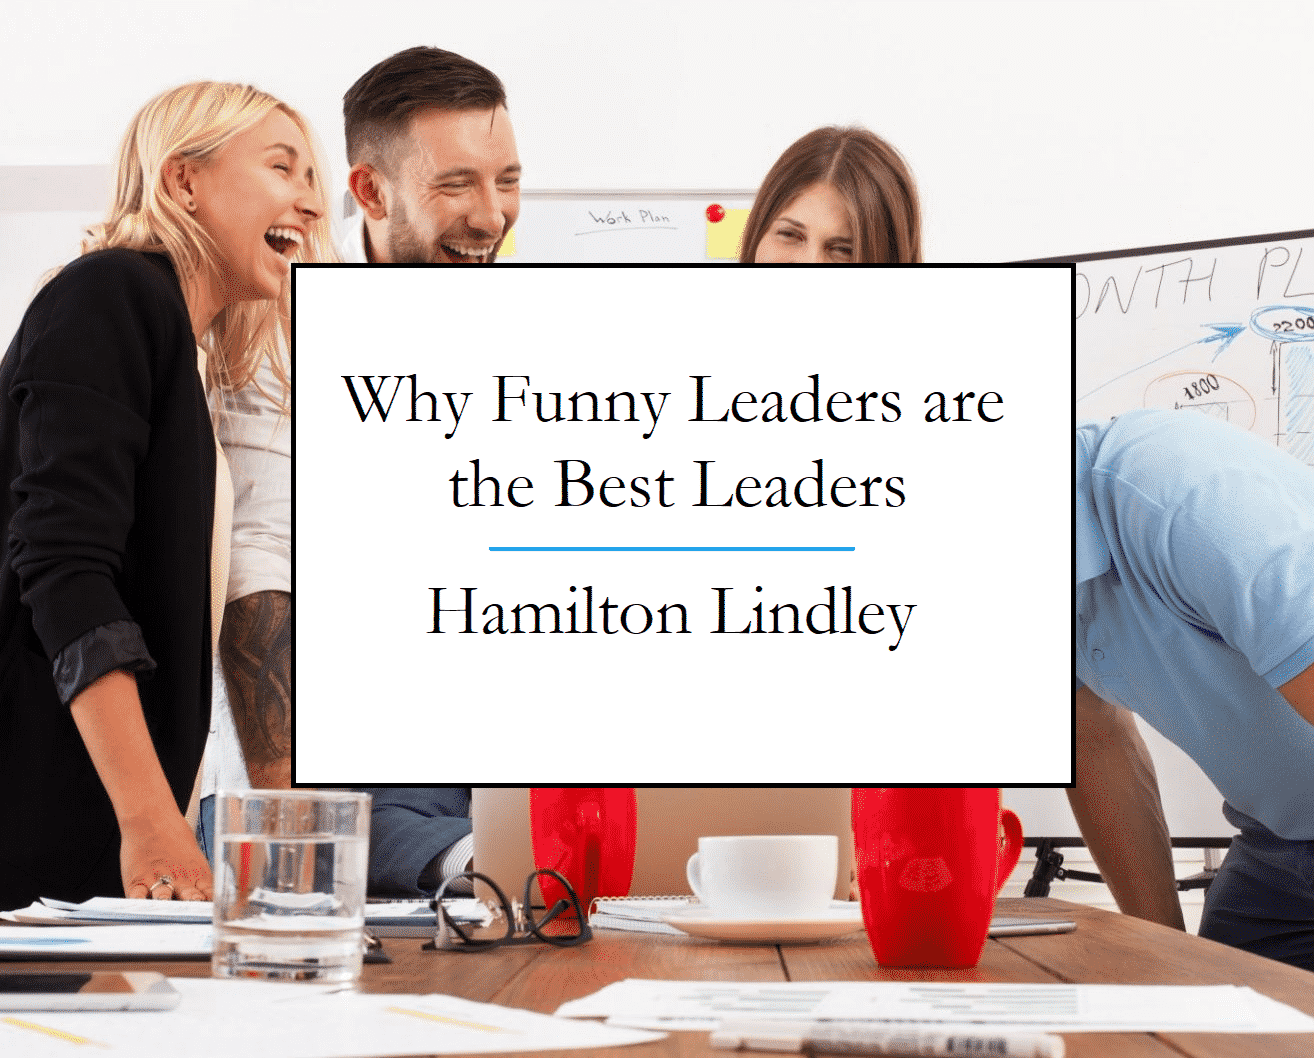 Why Funny Leaders are the Best Leaders